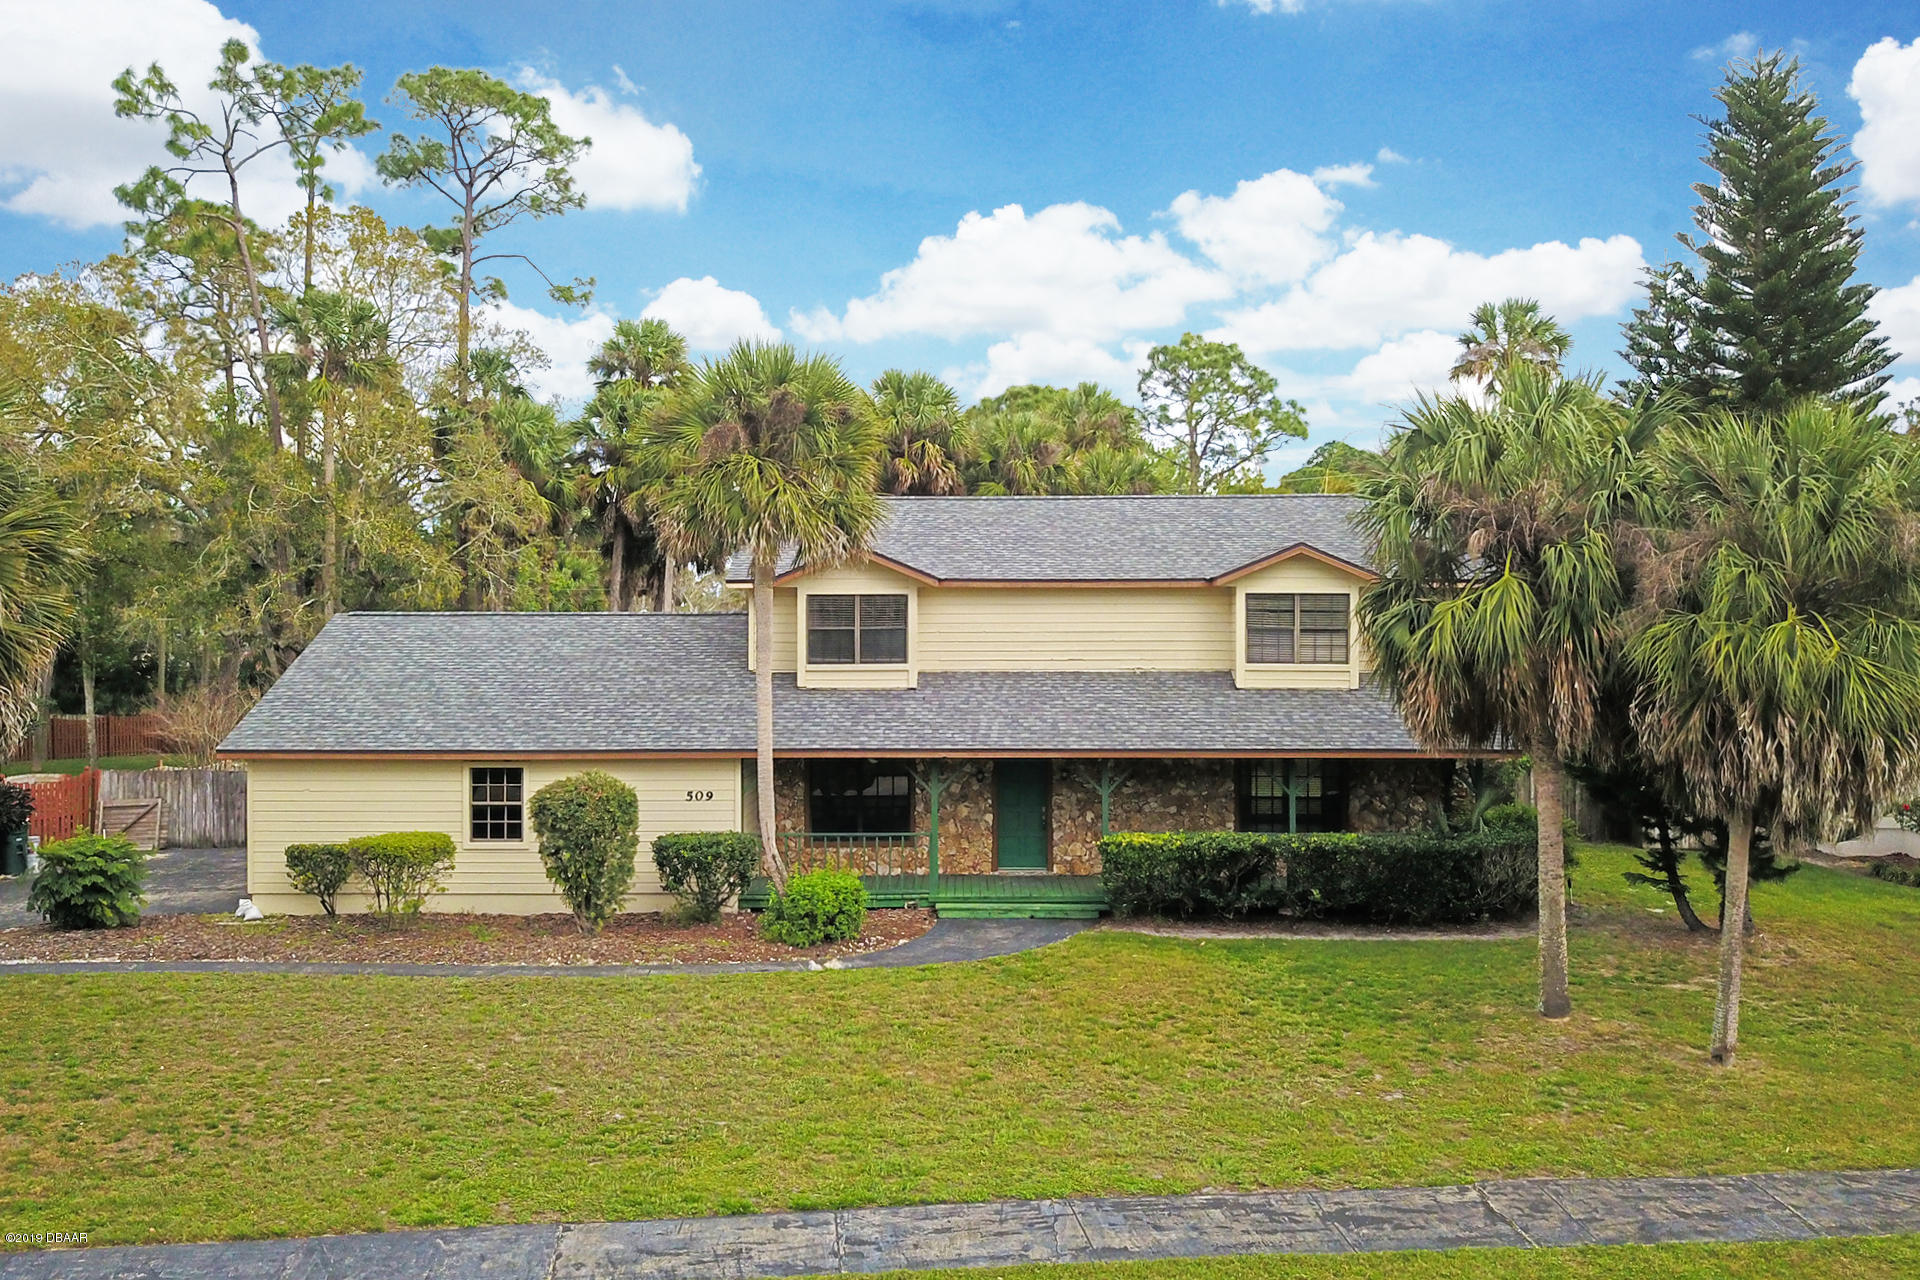 Photo of 509 Pelican Bay Drive, Daytona Beach, FL 32119